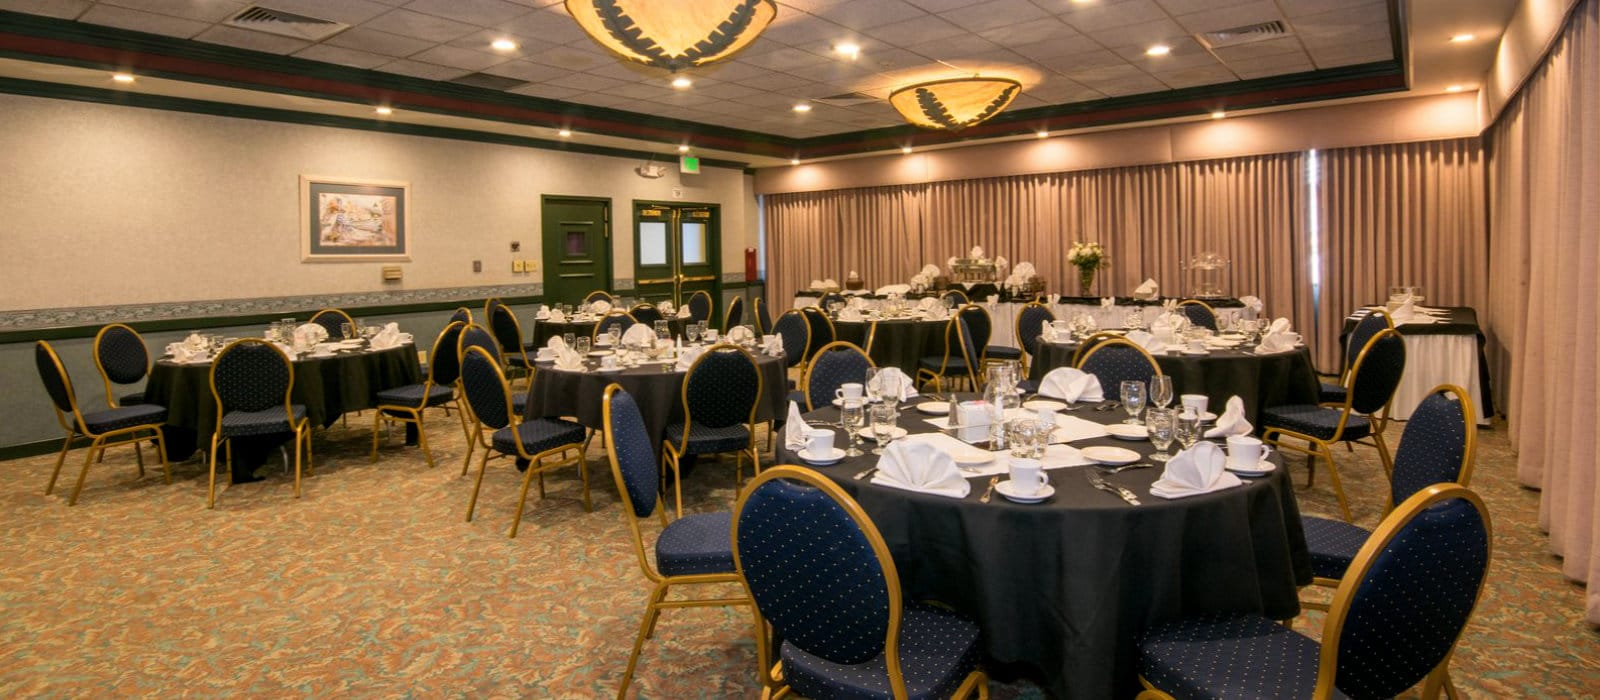 Meeting & Event Space Available